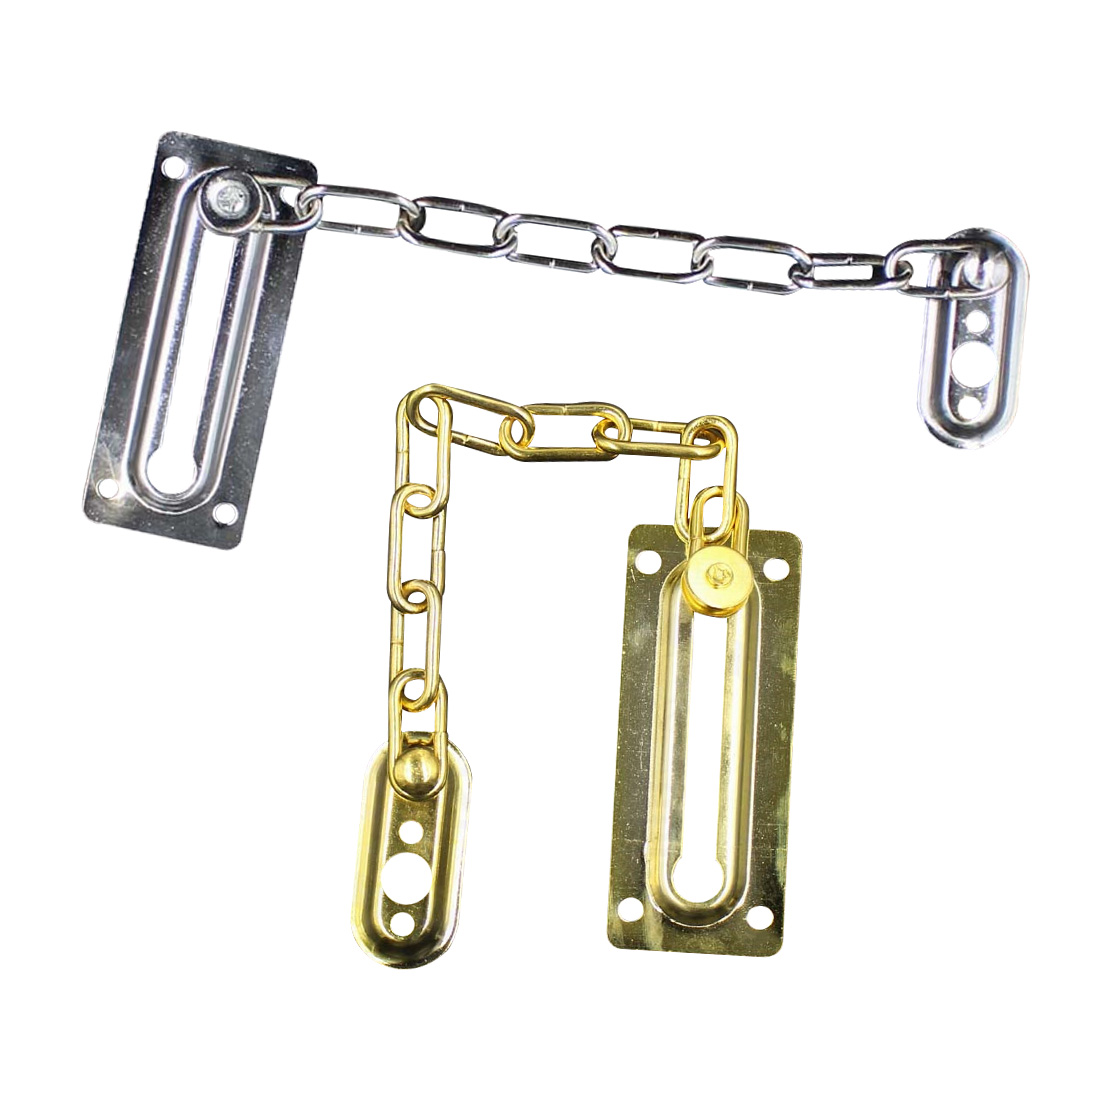 Security Peep Bolt Locks Cabinet Latches 1pc Chrome Chain Door Safety Guard Latch DIY Home Tools